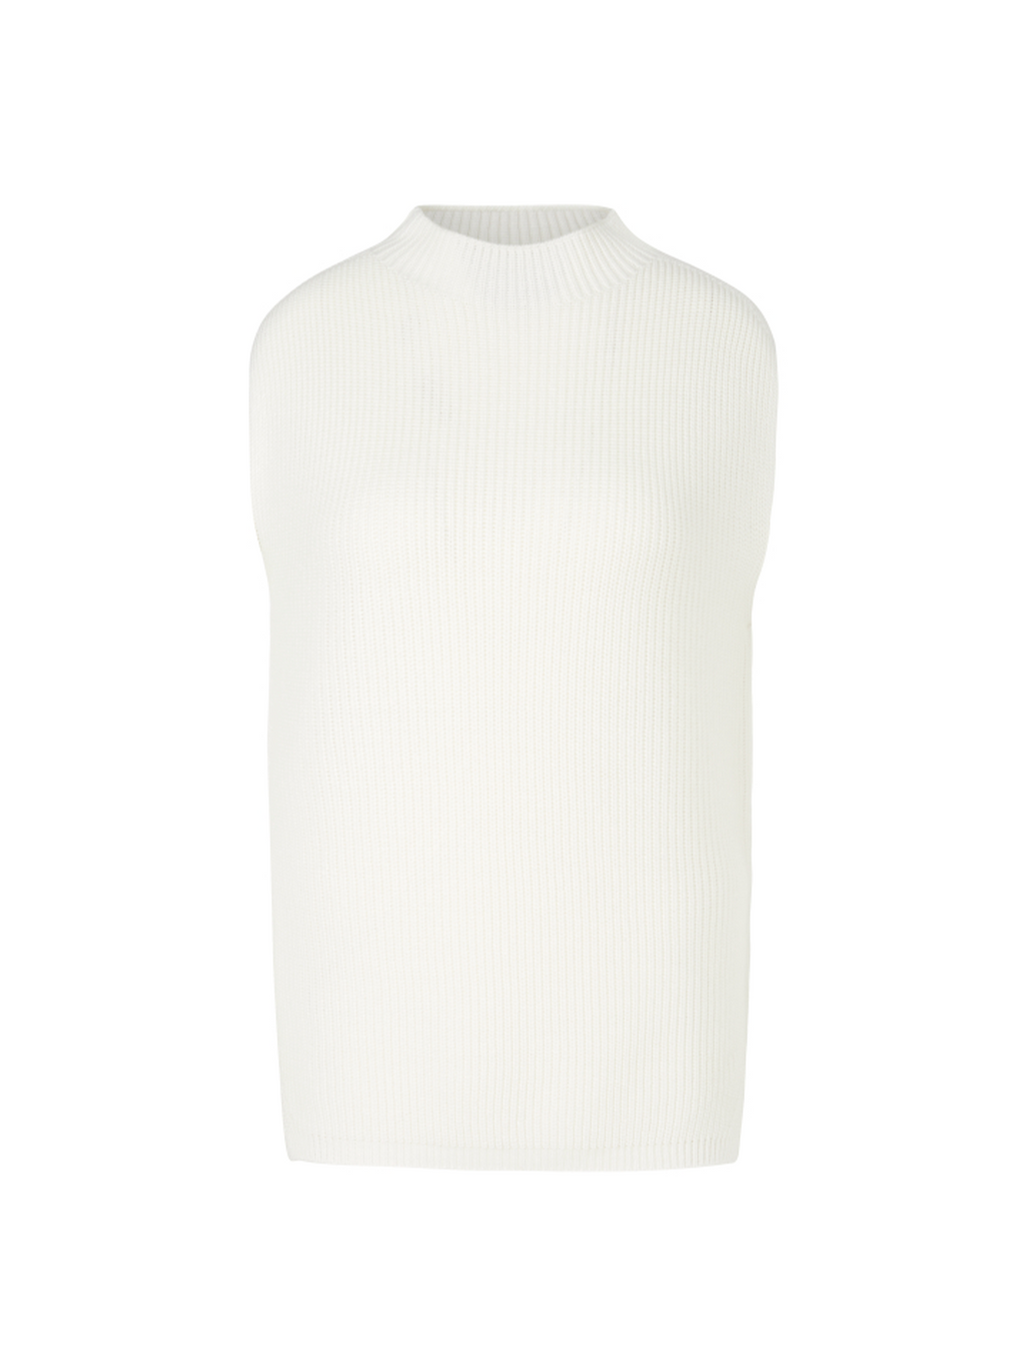 Marc Cain Sport Knitted Top